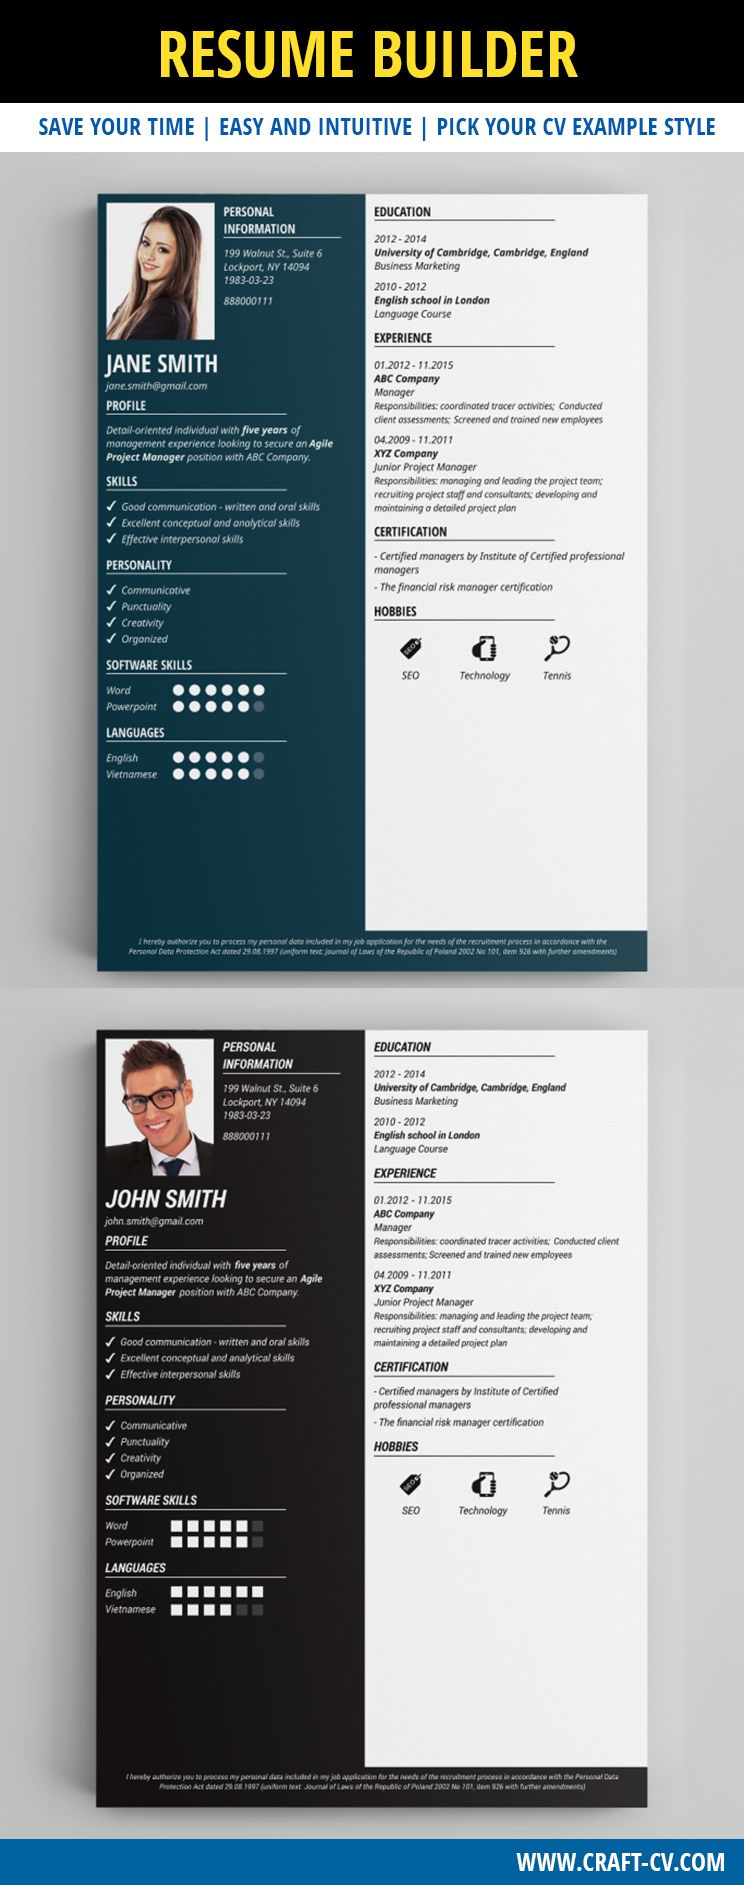 Resume Maker These Resume Templates will